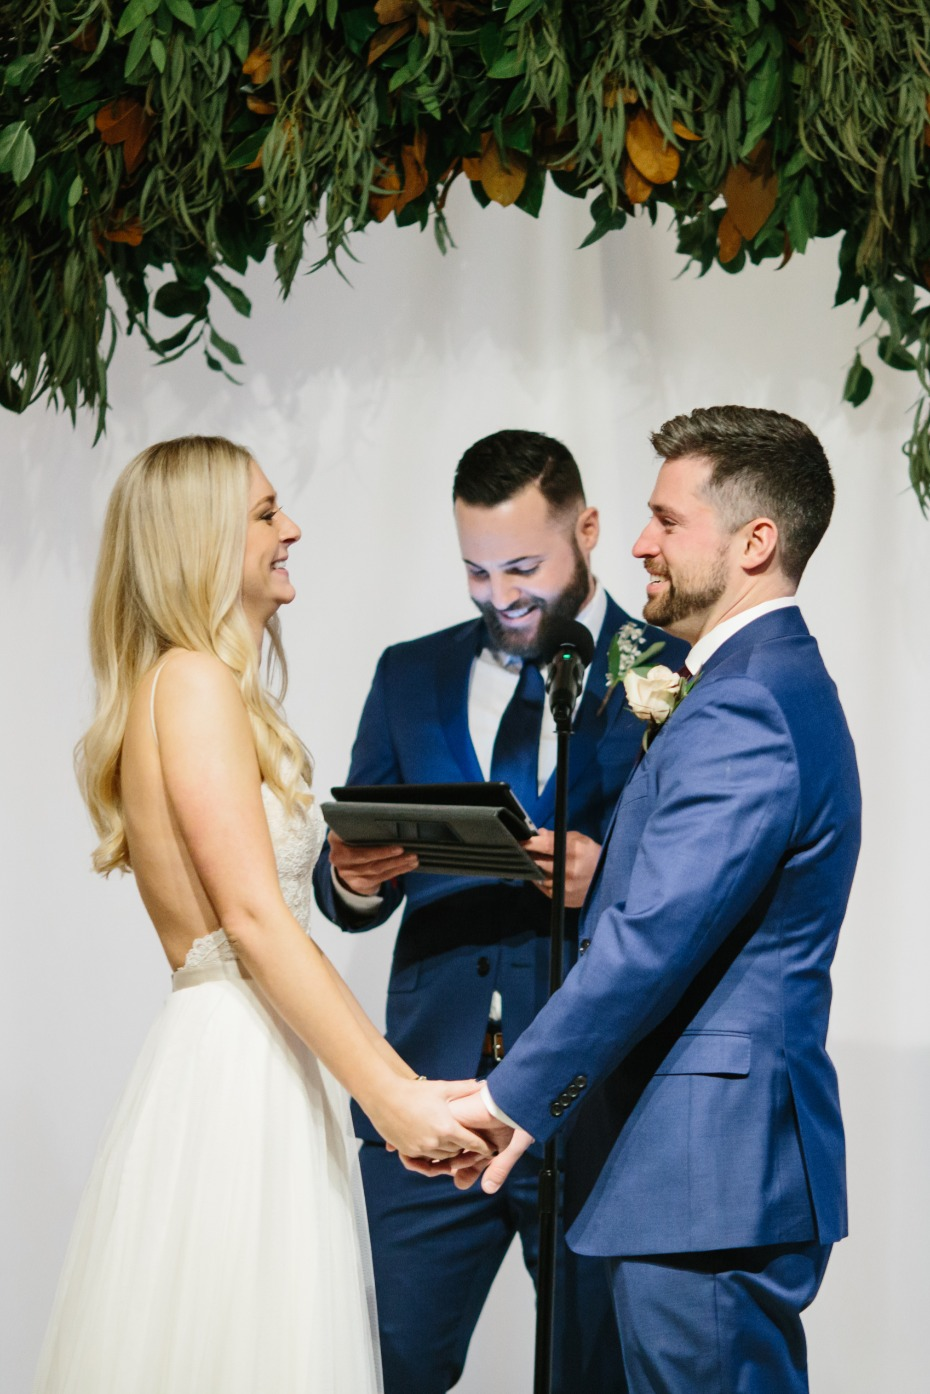 Kayla Cummings Getting Married to Husband Griffin